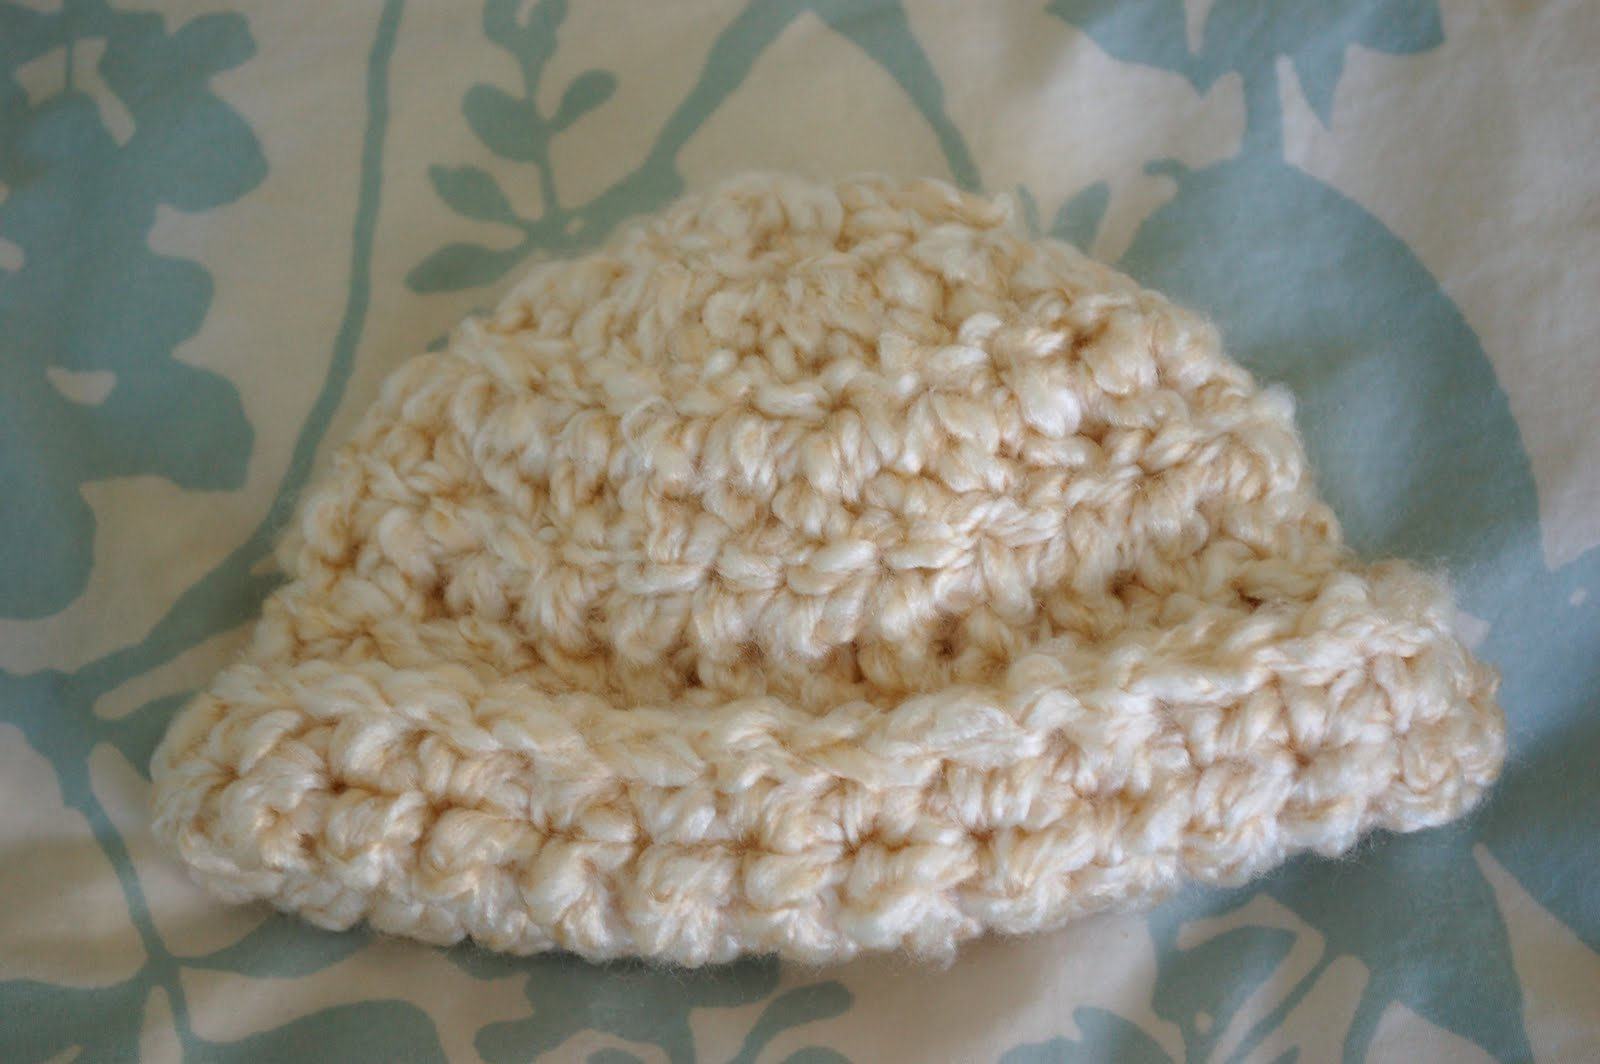 Crochet Patterns Chunky Yarn : CROCHET PATTERN FOR CHUNKY YARN - Crochet Club